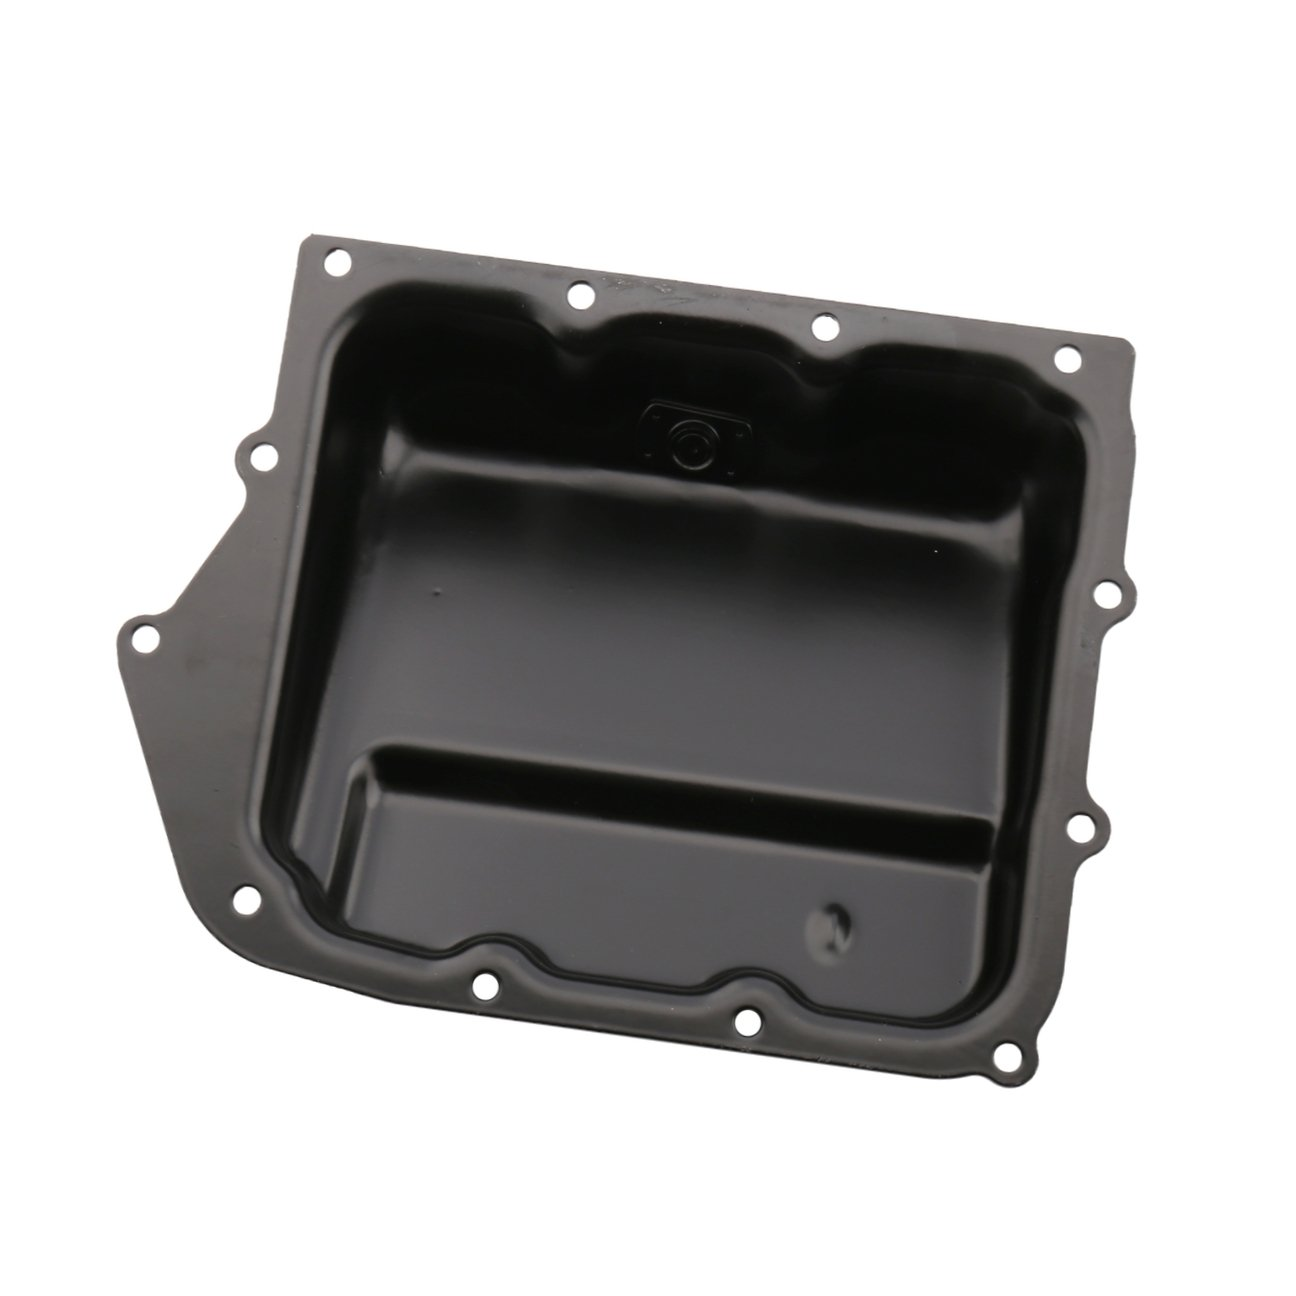 SKP SK265833 Automatic Transmission Oil Pan